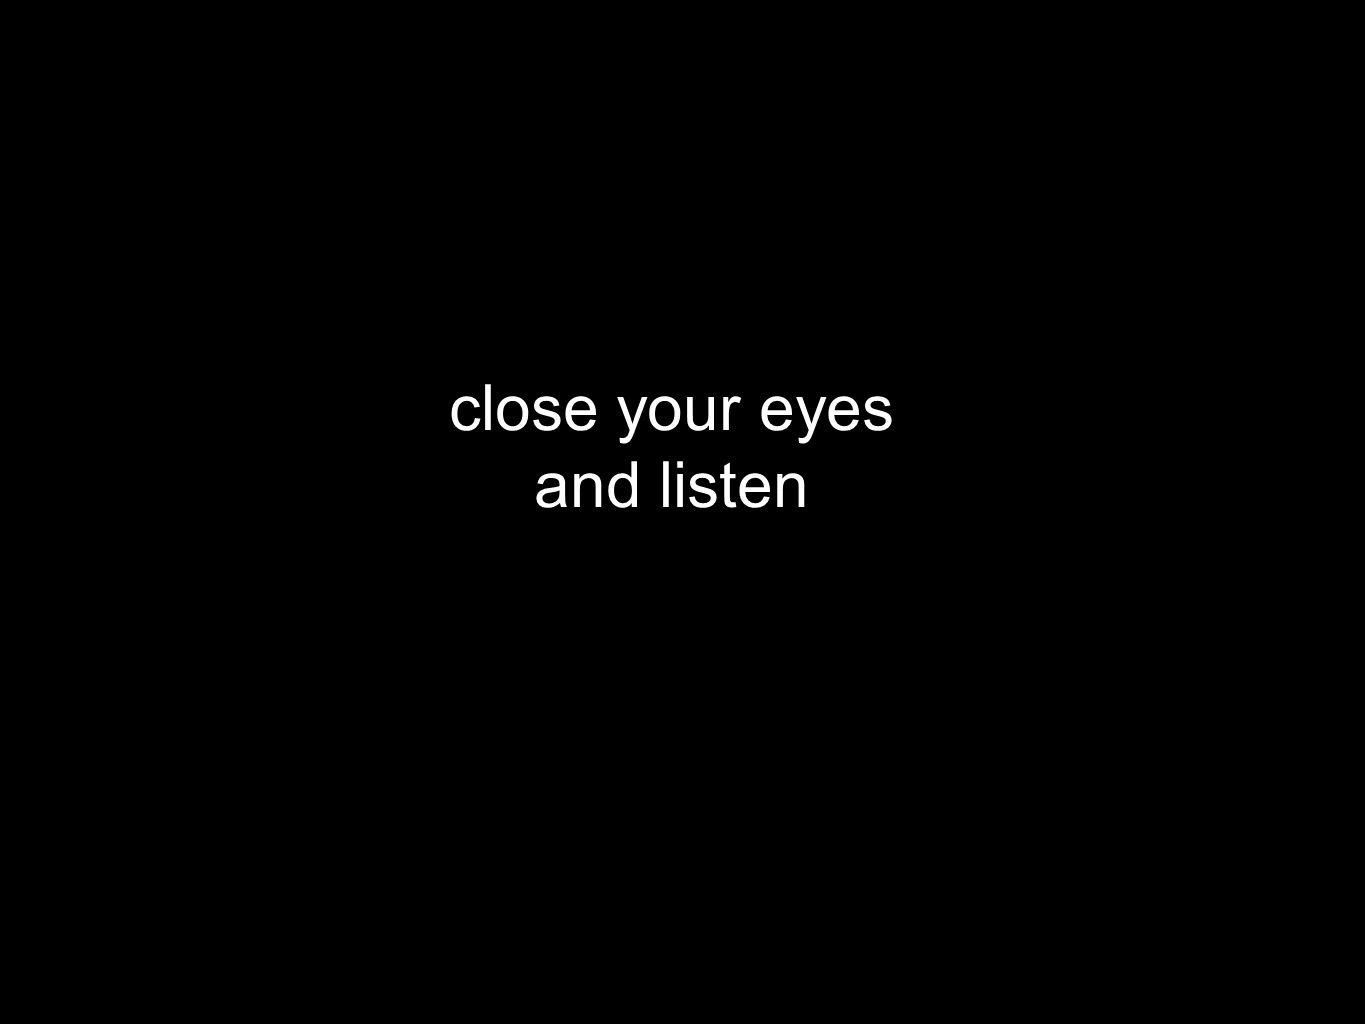 close your eyes and listen